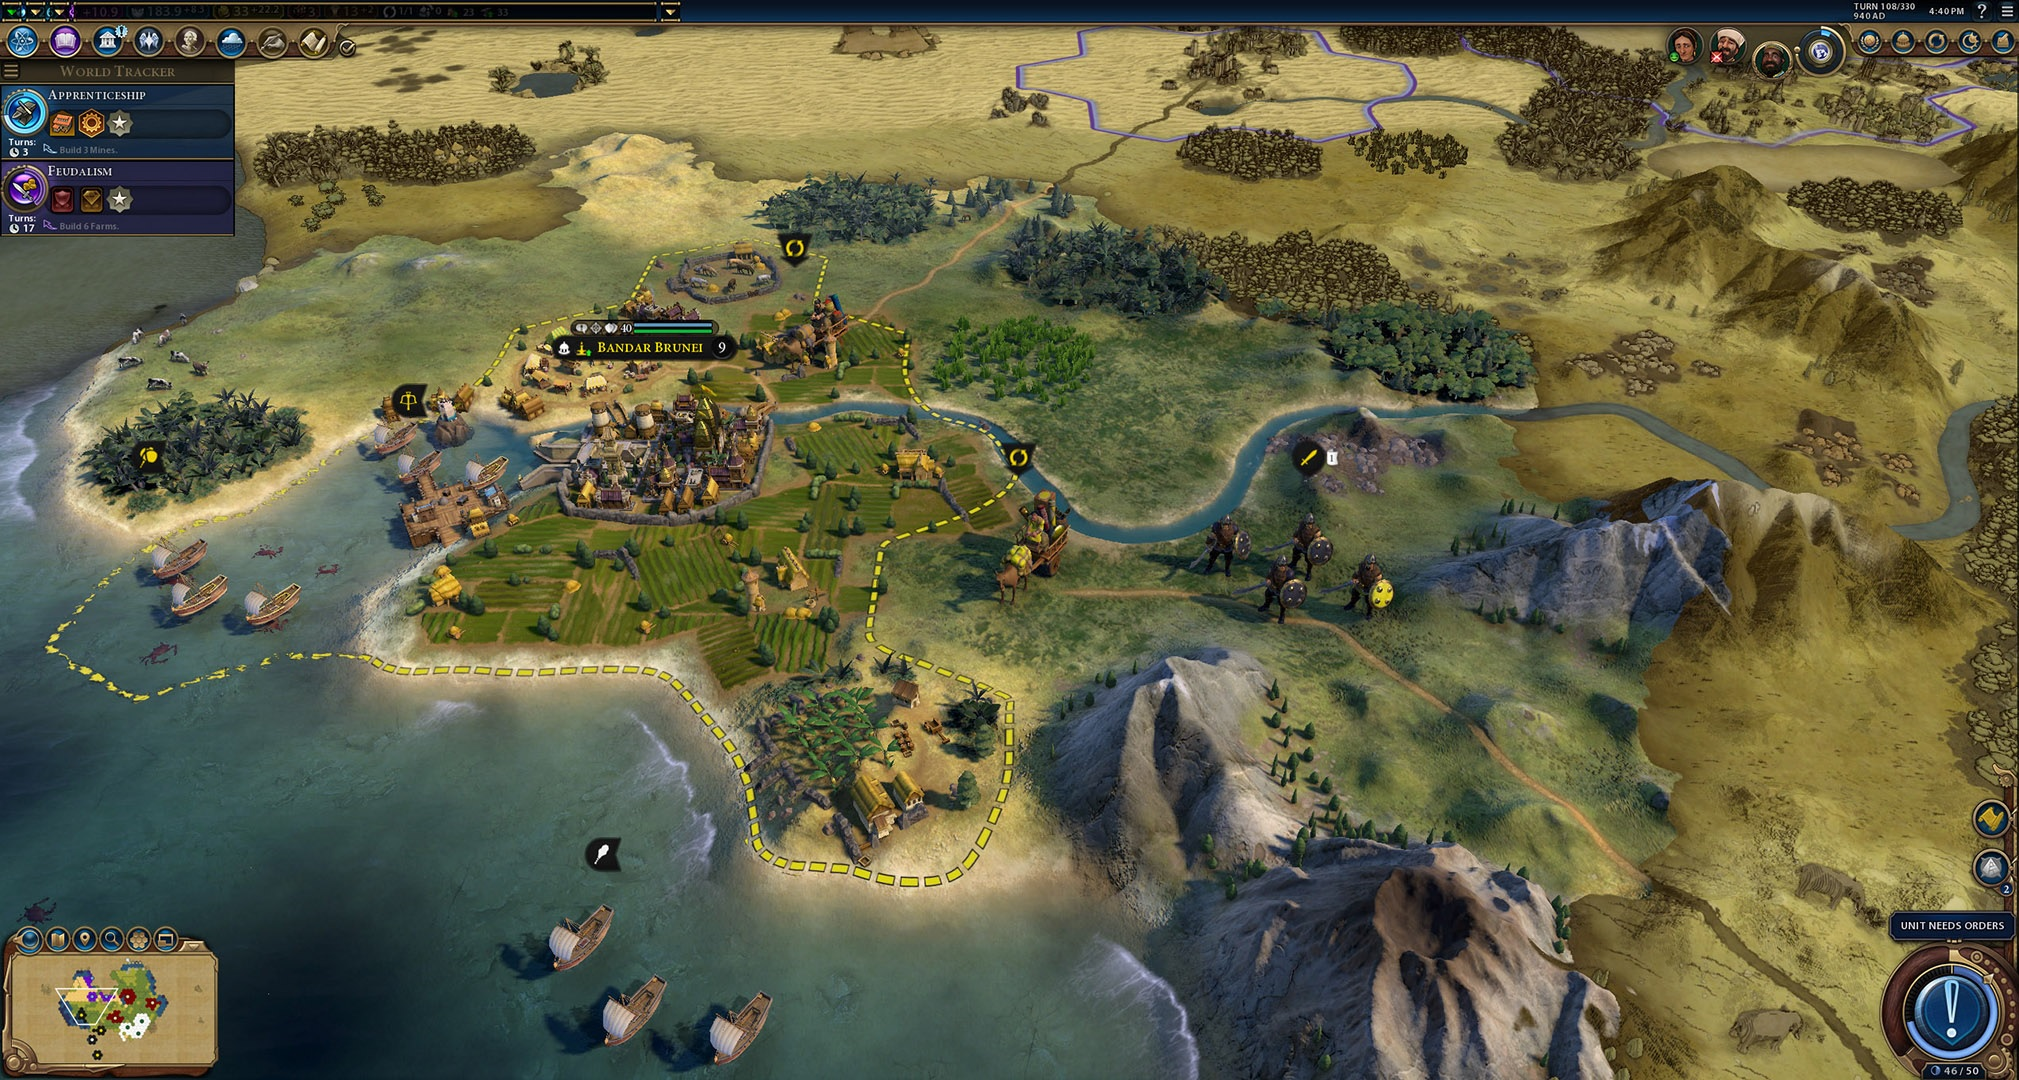 This Civilization VI mod changes the graphics to look like